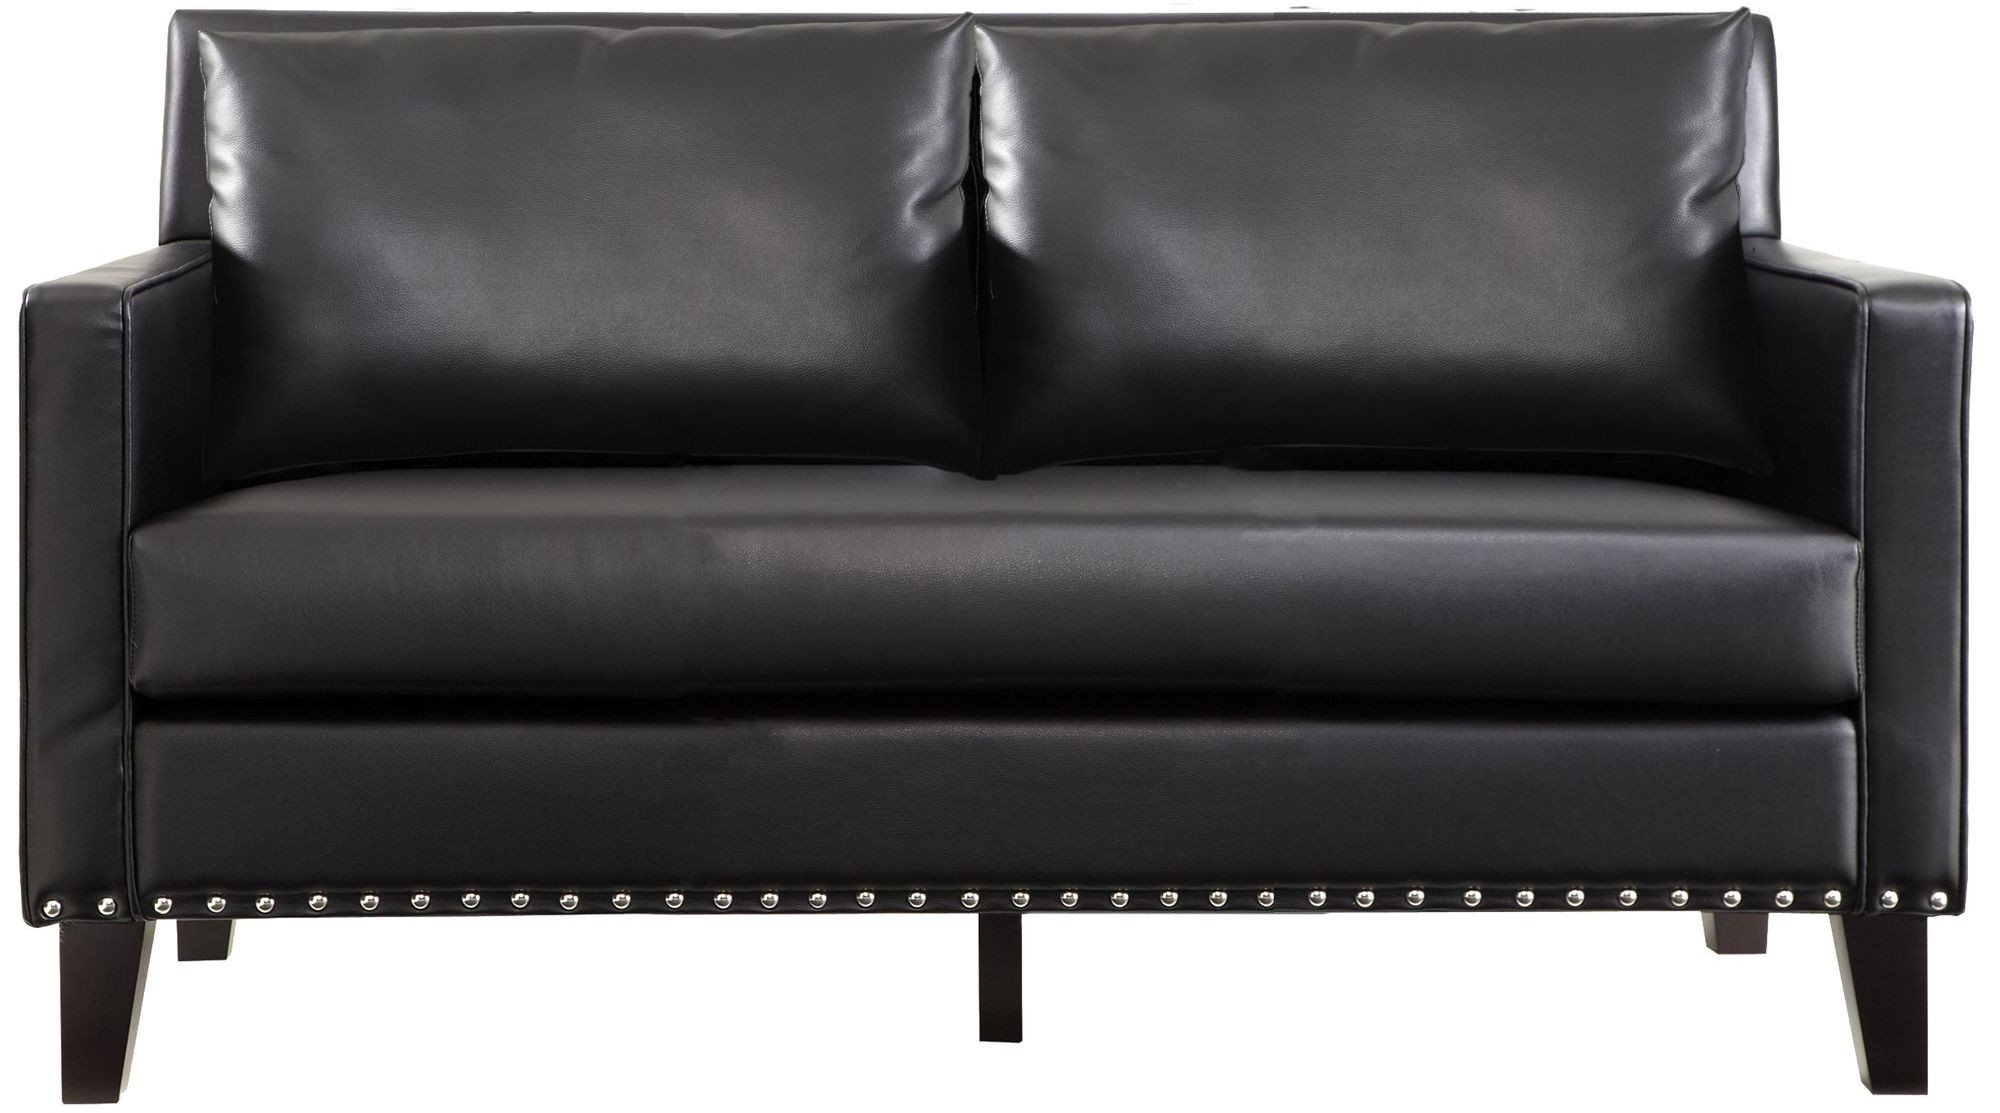 Dallas Black Leather Loveseat Lc21452bl Armen Living